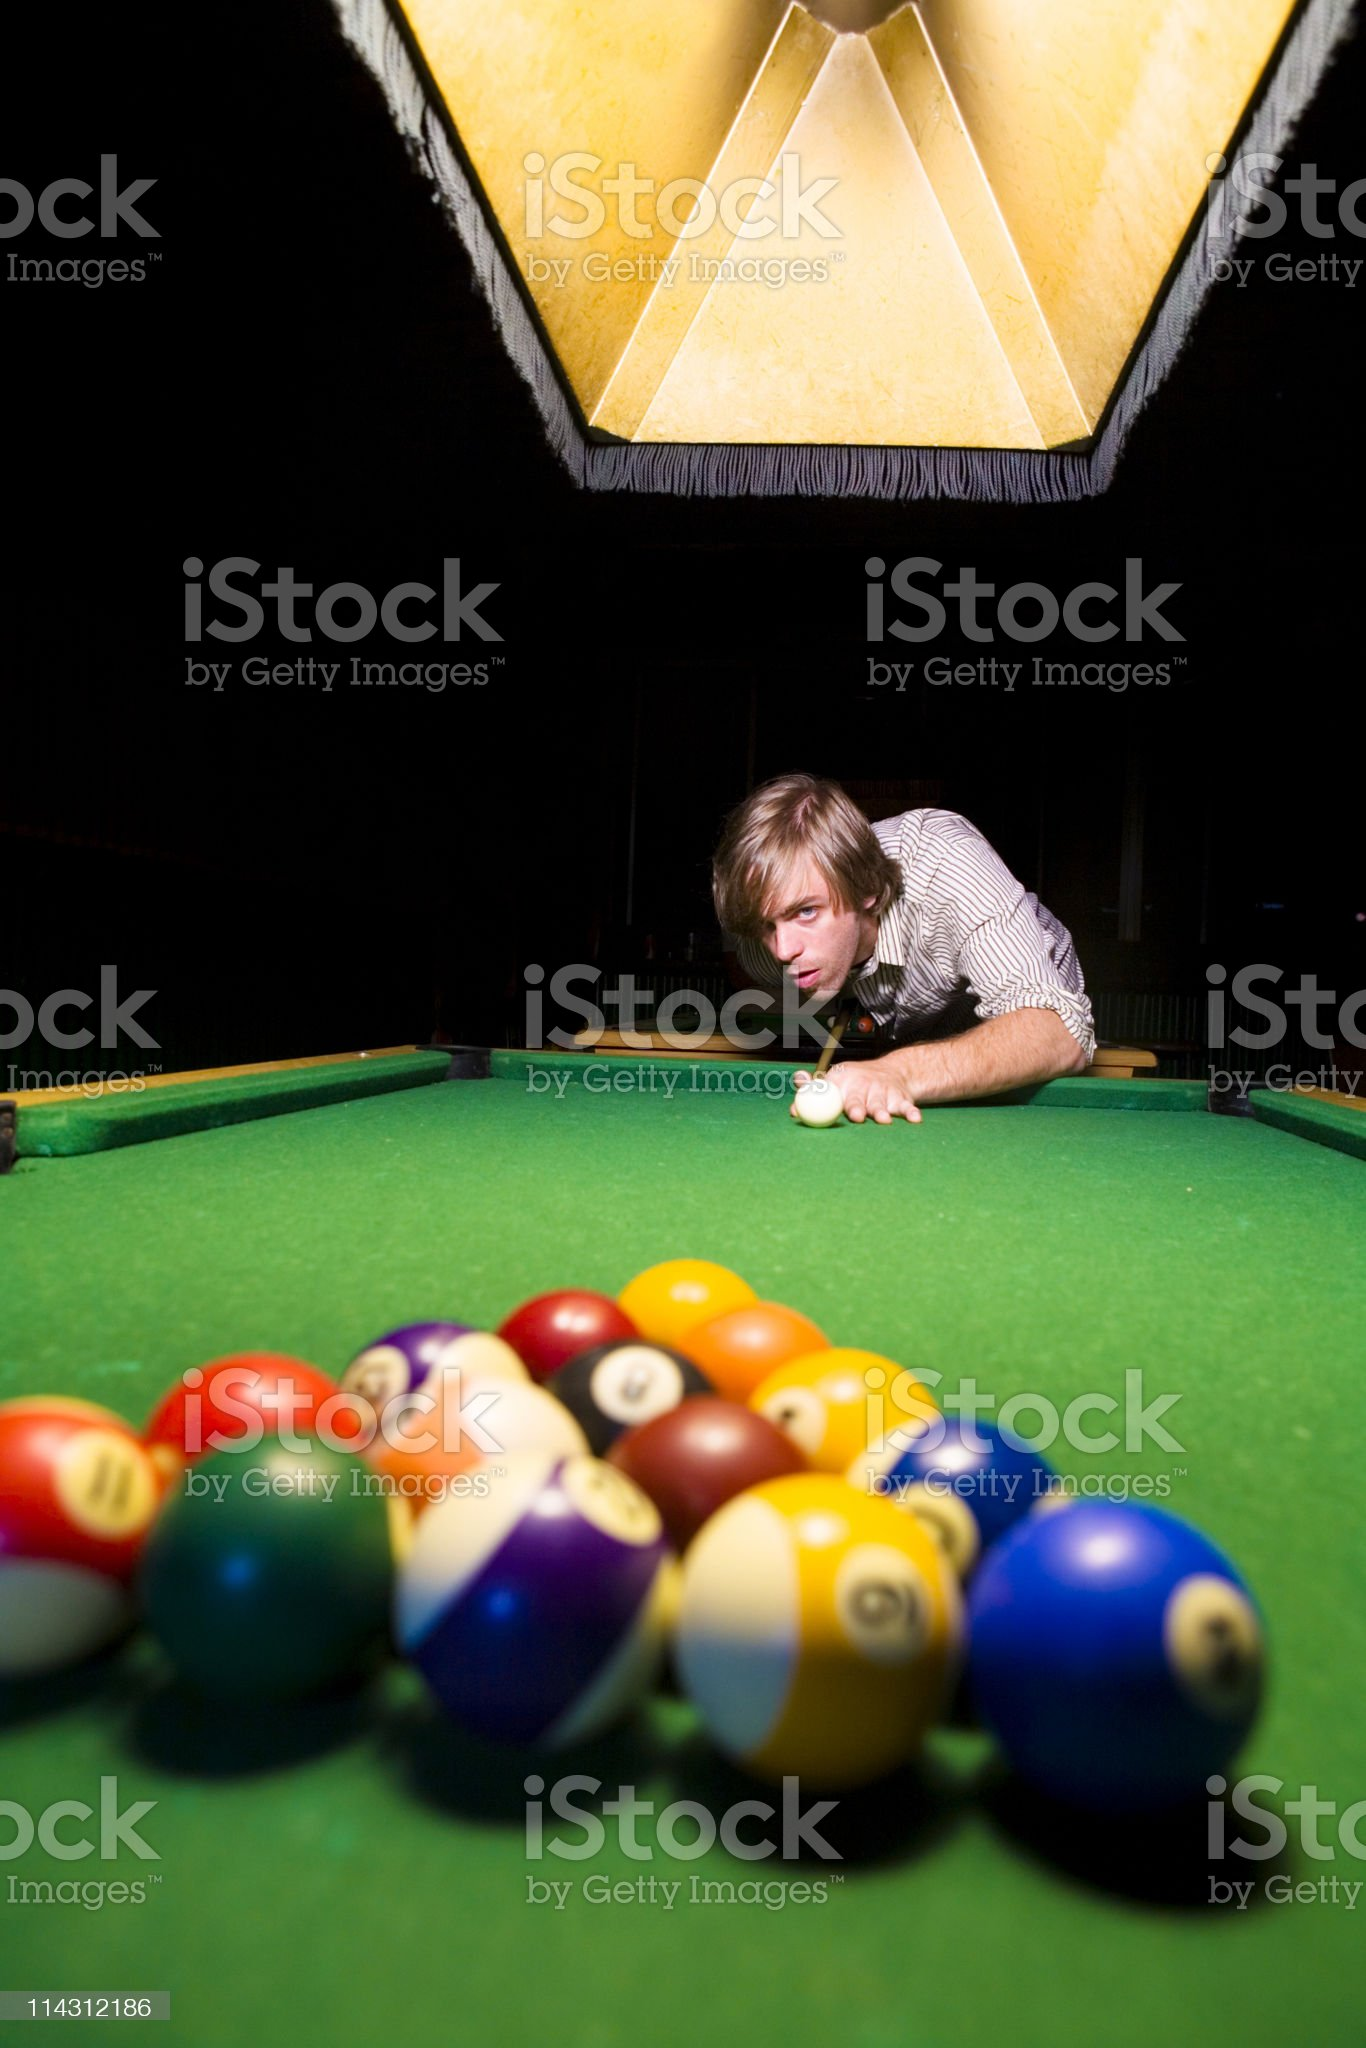 Pool hustler royalty-free stock photo